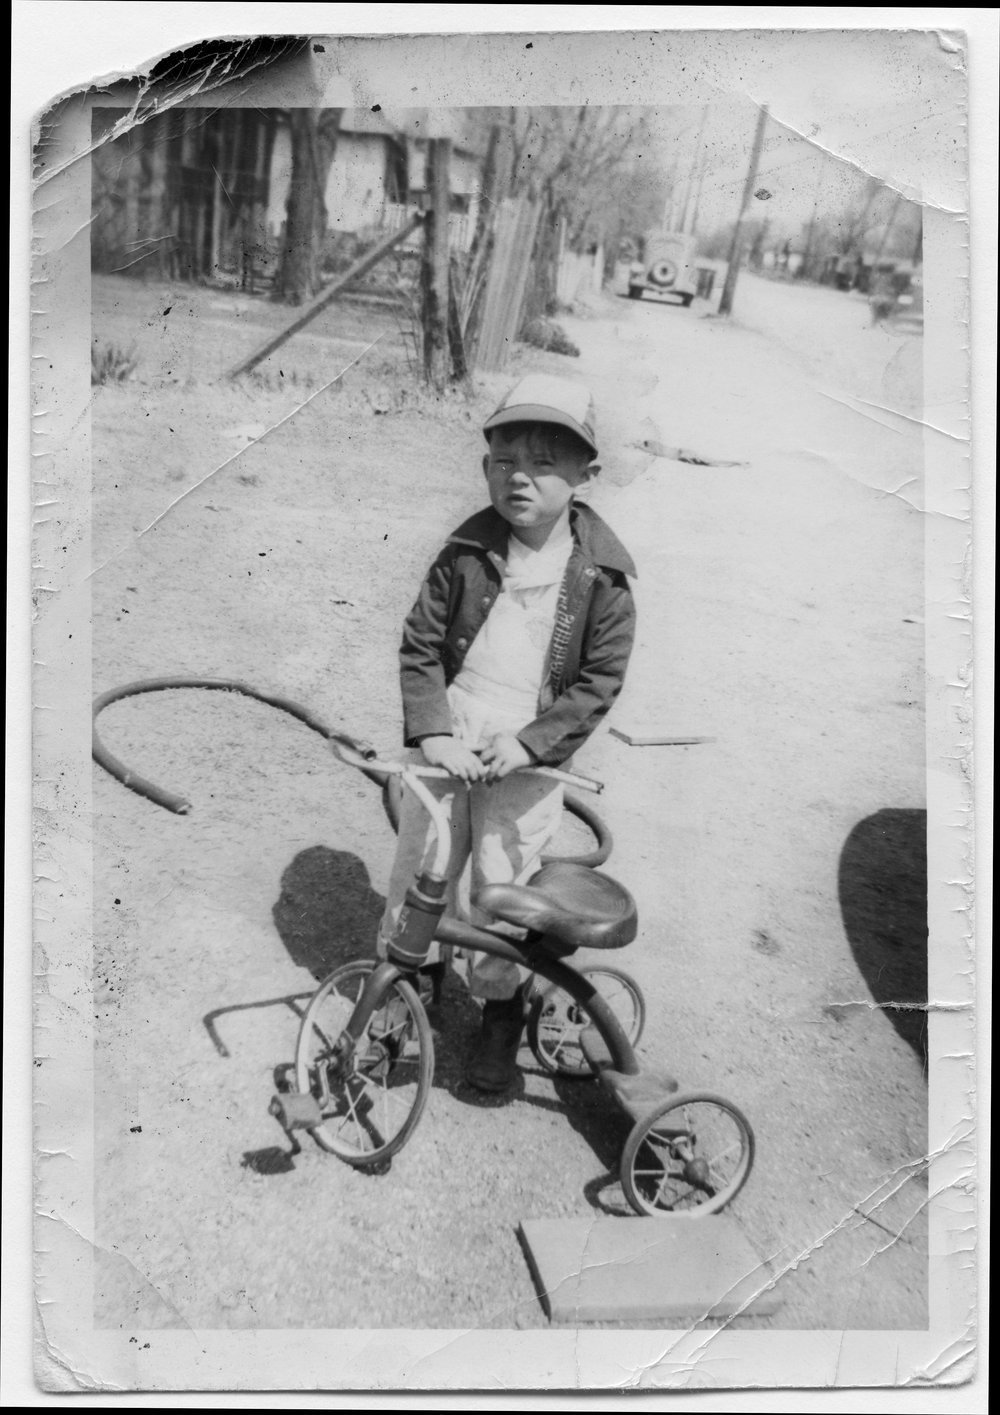 Boy with tricycle, Treece, Kansas